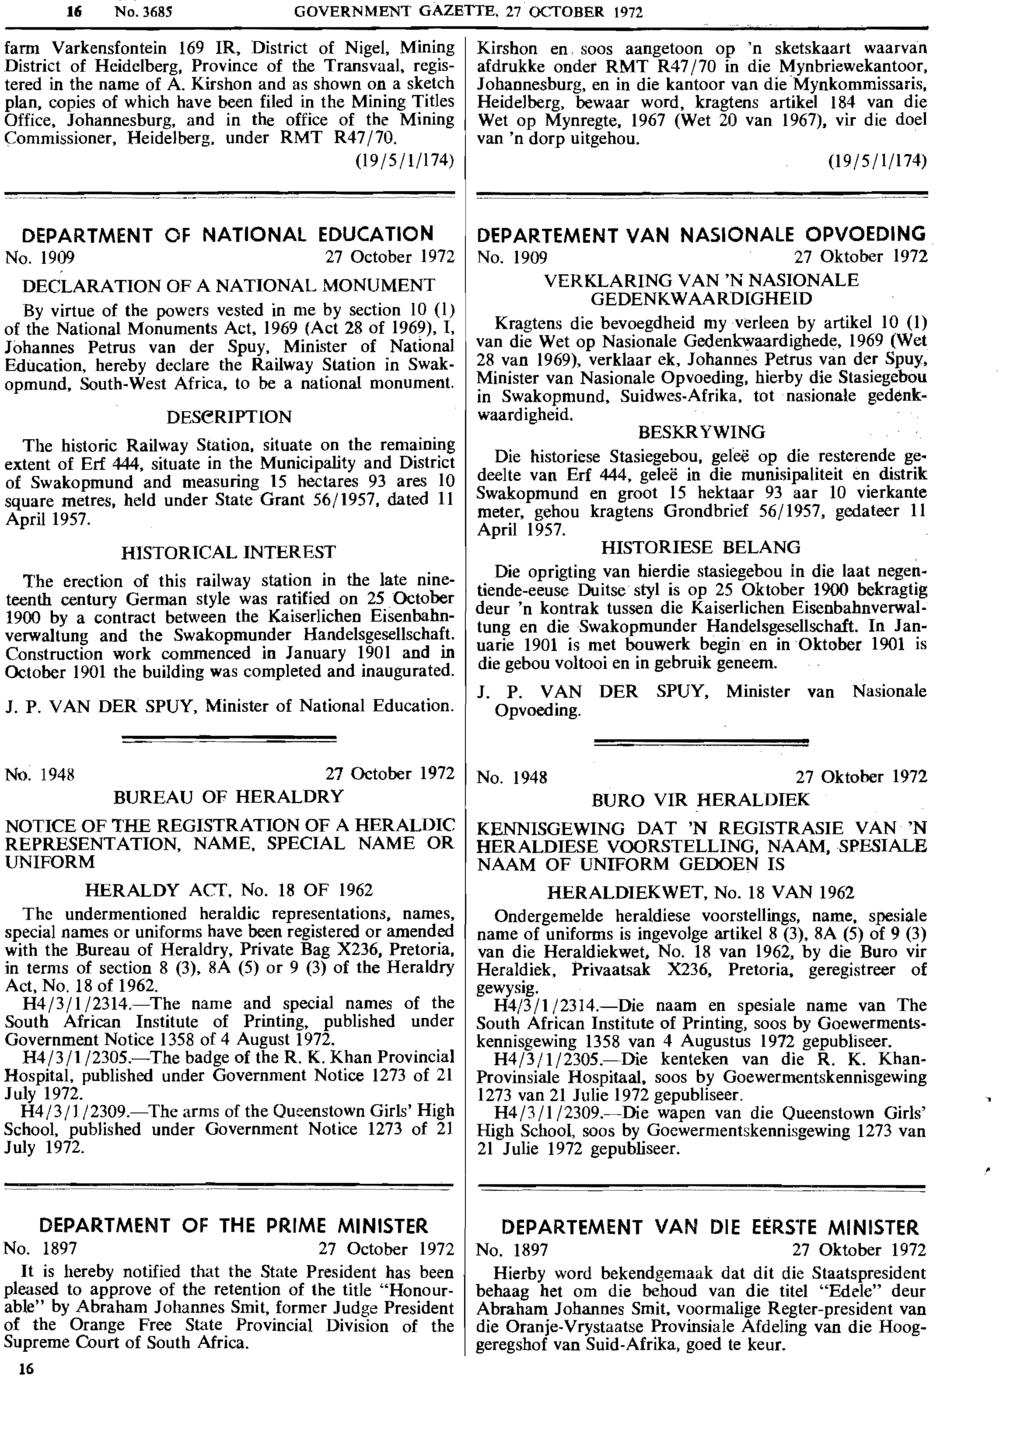 16 No. 3685 GOVERNMENT GAZETTE. 27 OCTOBER 1972 farm Varkensfontein 169 IR, District of Nigel, Mining District of Heidelberg, Province of the Transvaal, registered in the name of A.